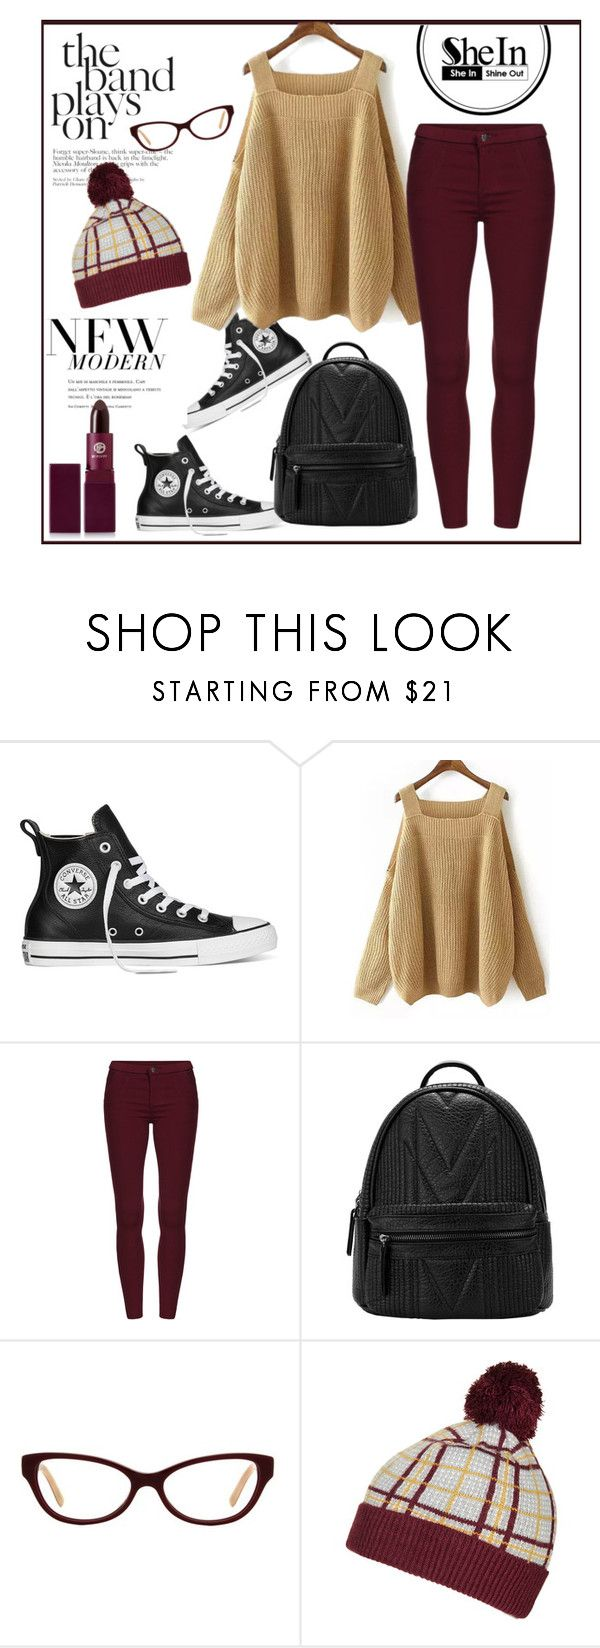 """""""SHEIN Khaki Off Shoulder Knit Loose Sweater - Contest"""" by biange ❤ liked on Polyvore featuring Converse, Tory Burch, Topshop and Lipstick Queen"""